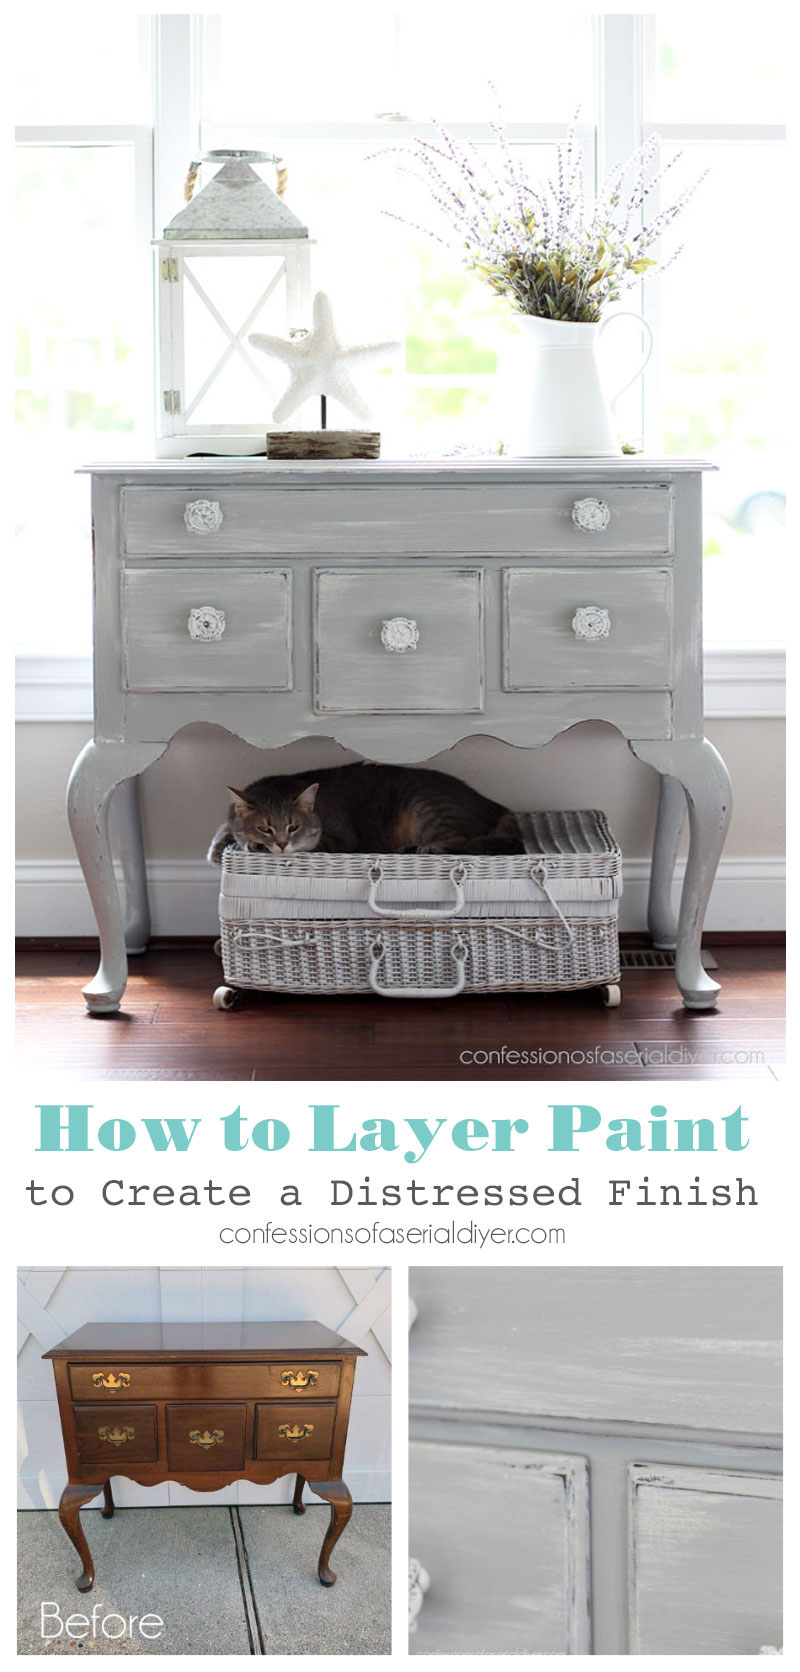 How to Layer Paint to Create a Distressed Look